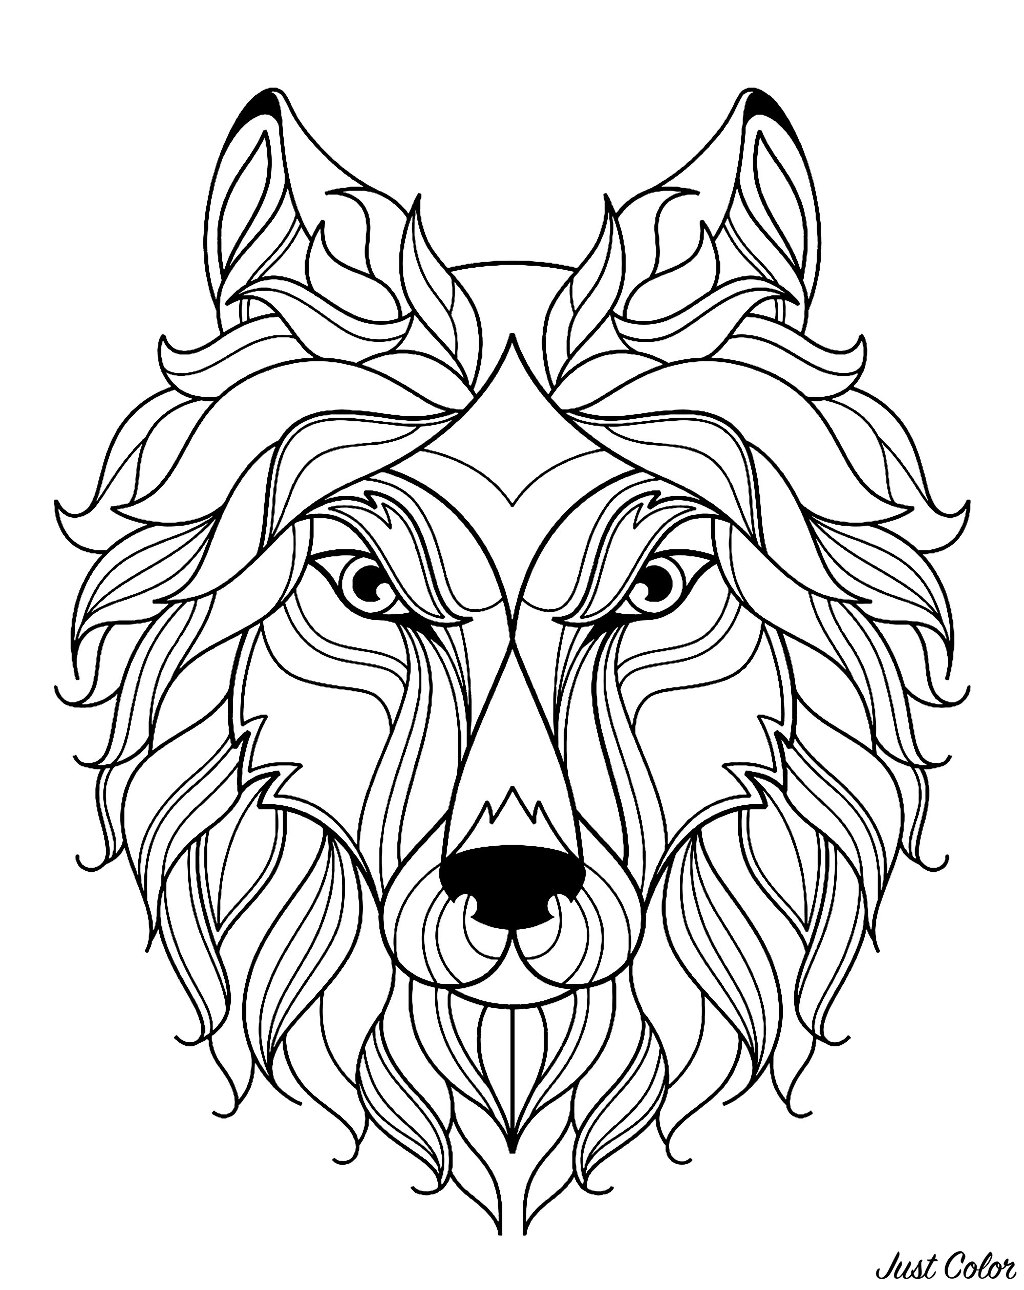 Wolf head, with simple patterns